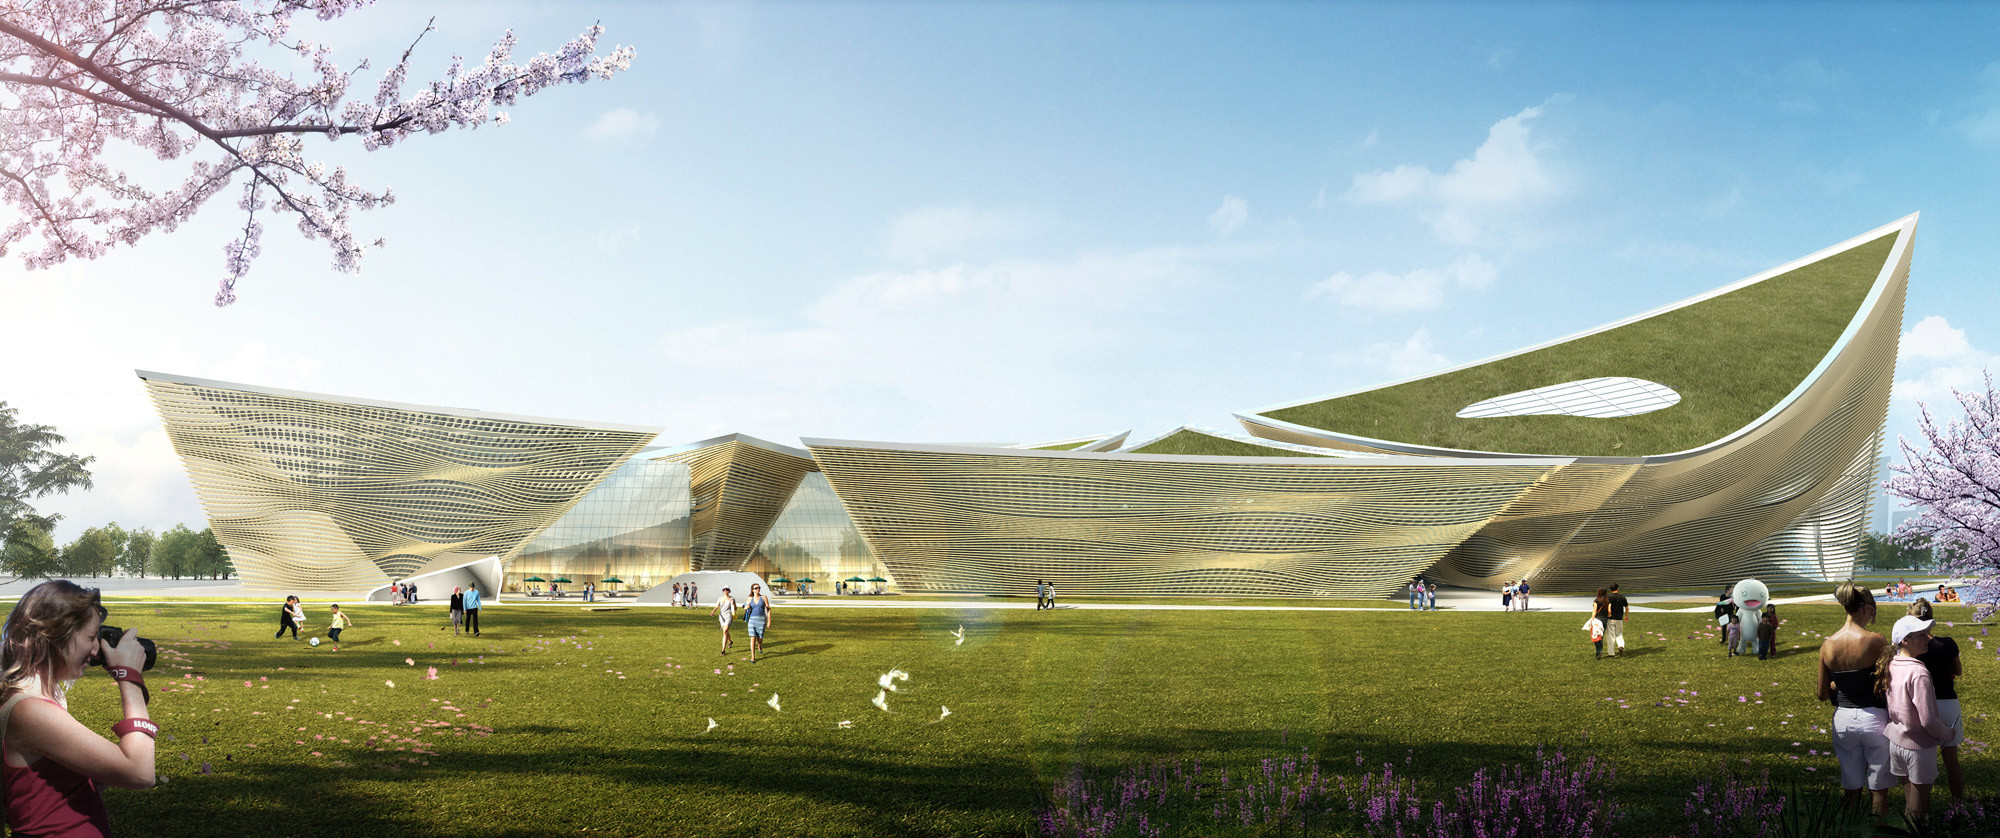 City Cultural Center Competition Entry Theeae Ltd